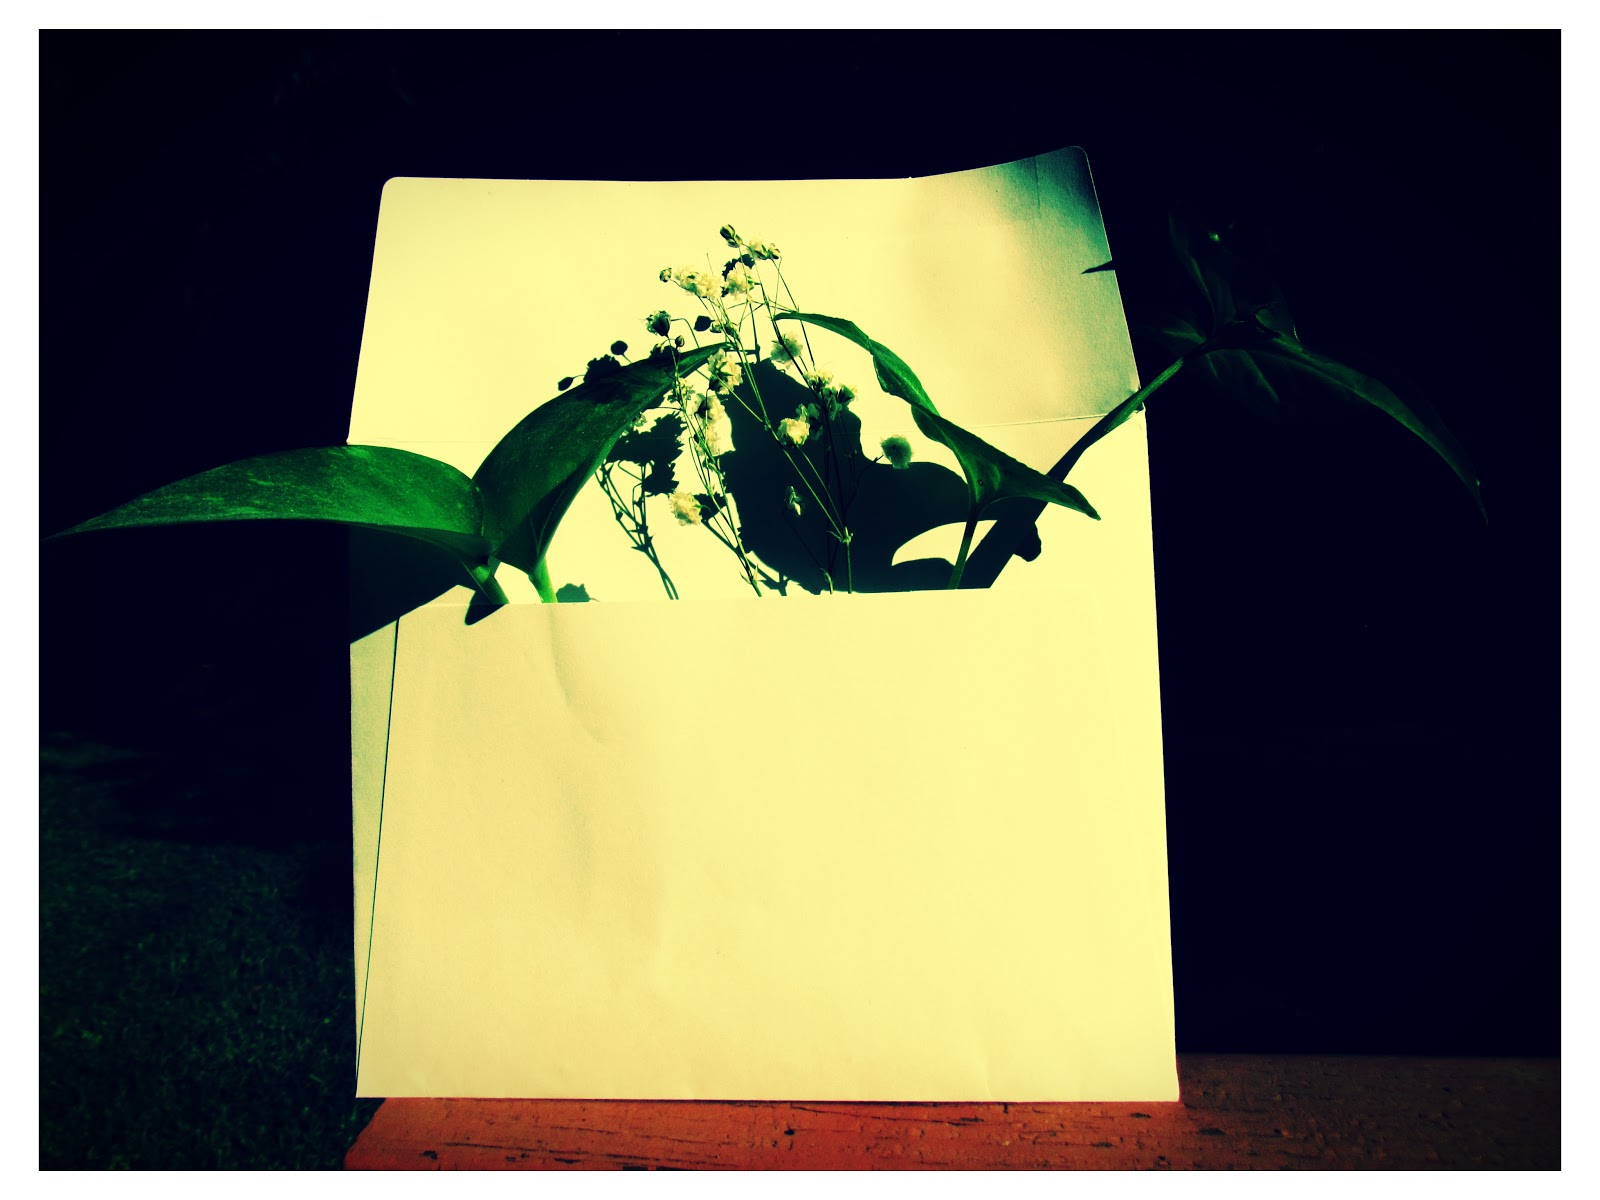 An white recycled envelope with green plants and baby's breath flowers inside